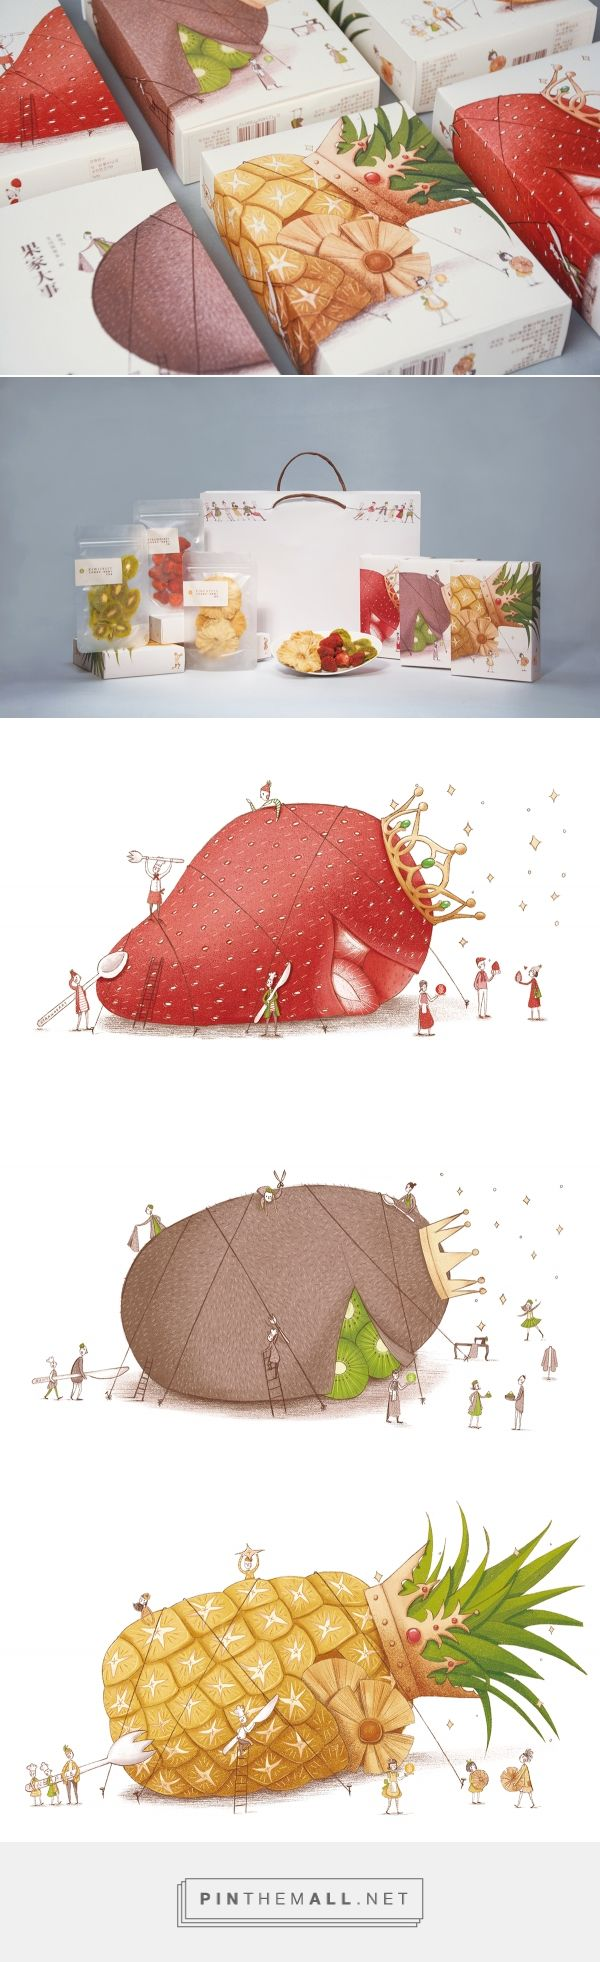 Imagination For Life|Dried Fruit Packaging on Behance - created via https://pinthemall.net